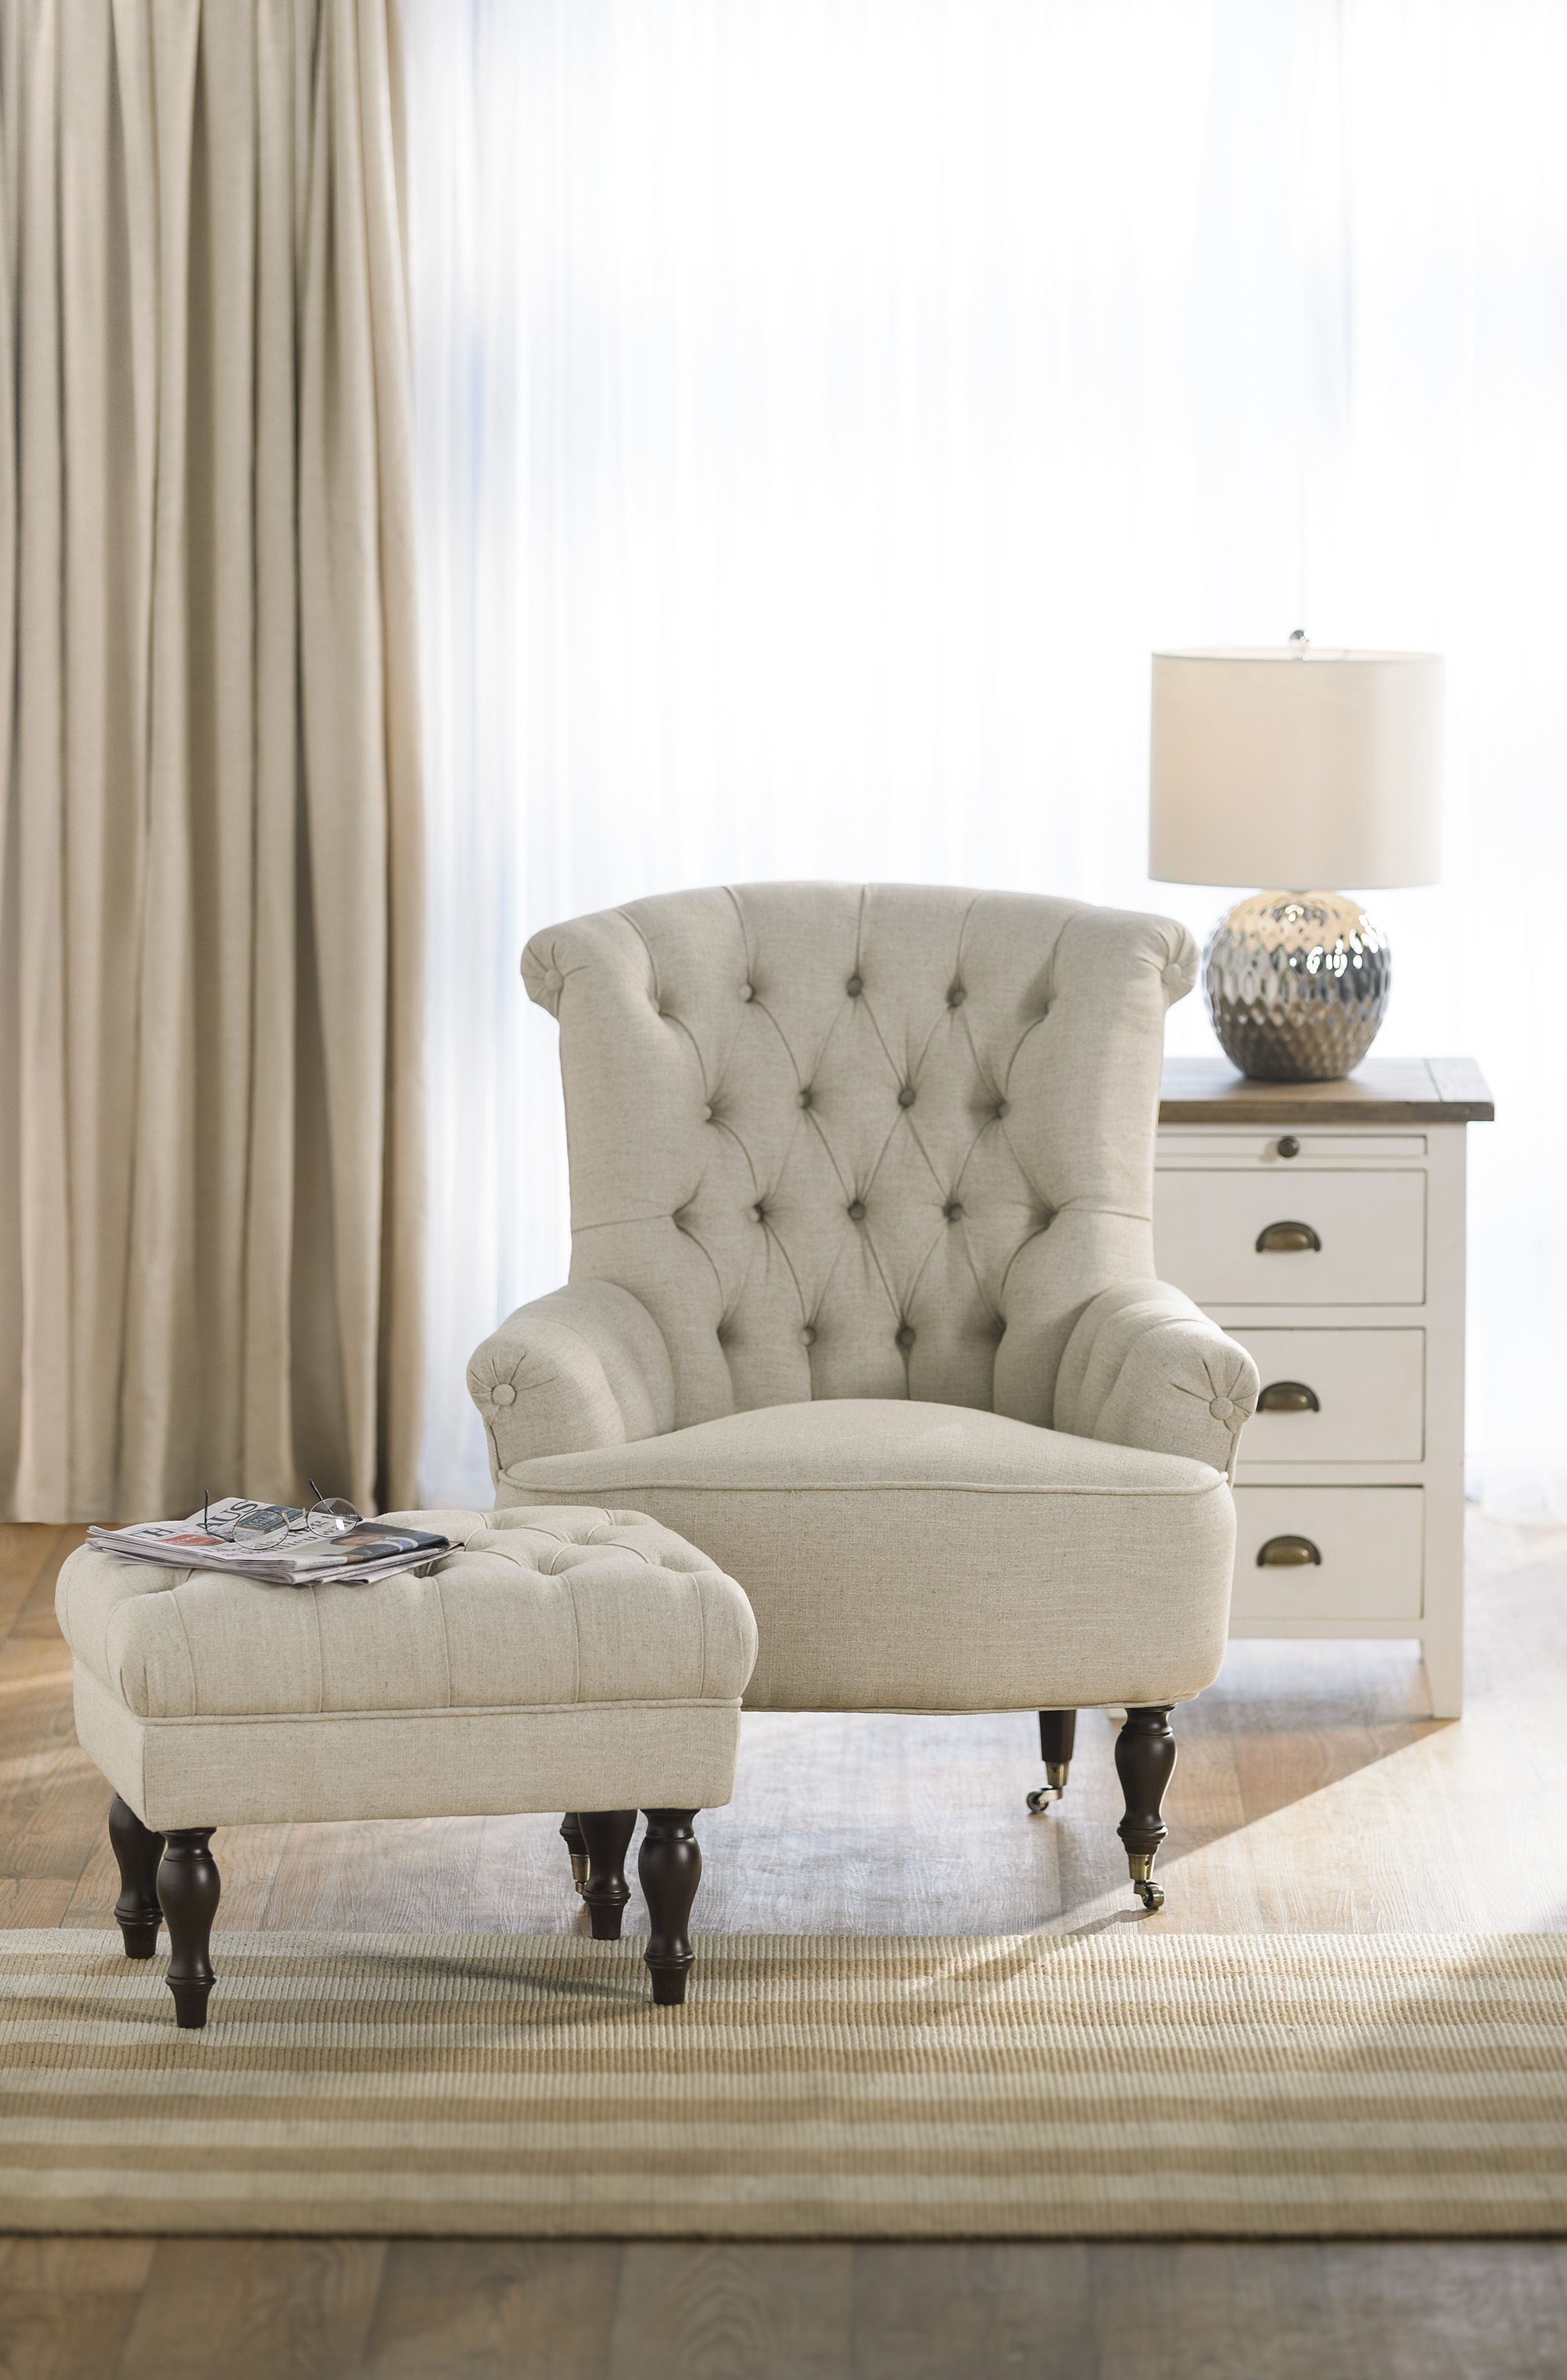 Buy 2 And Save On Selected Occasional Chairs Pictured Our Lorne Button Back Chair Taupe 1st Occasional Chairs Living Room Occasional Chairs Bedroom Furniture